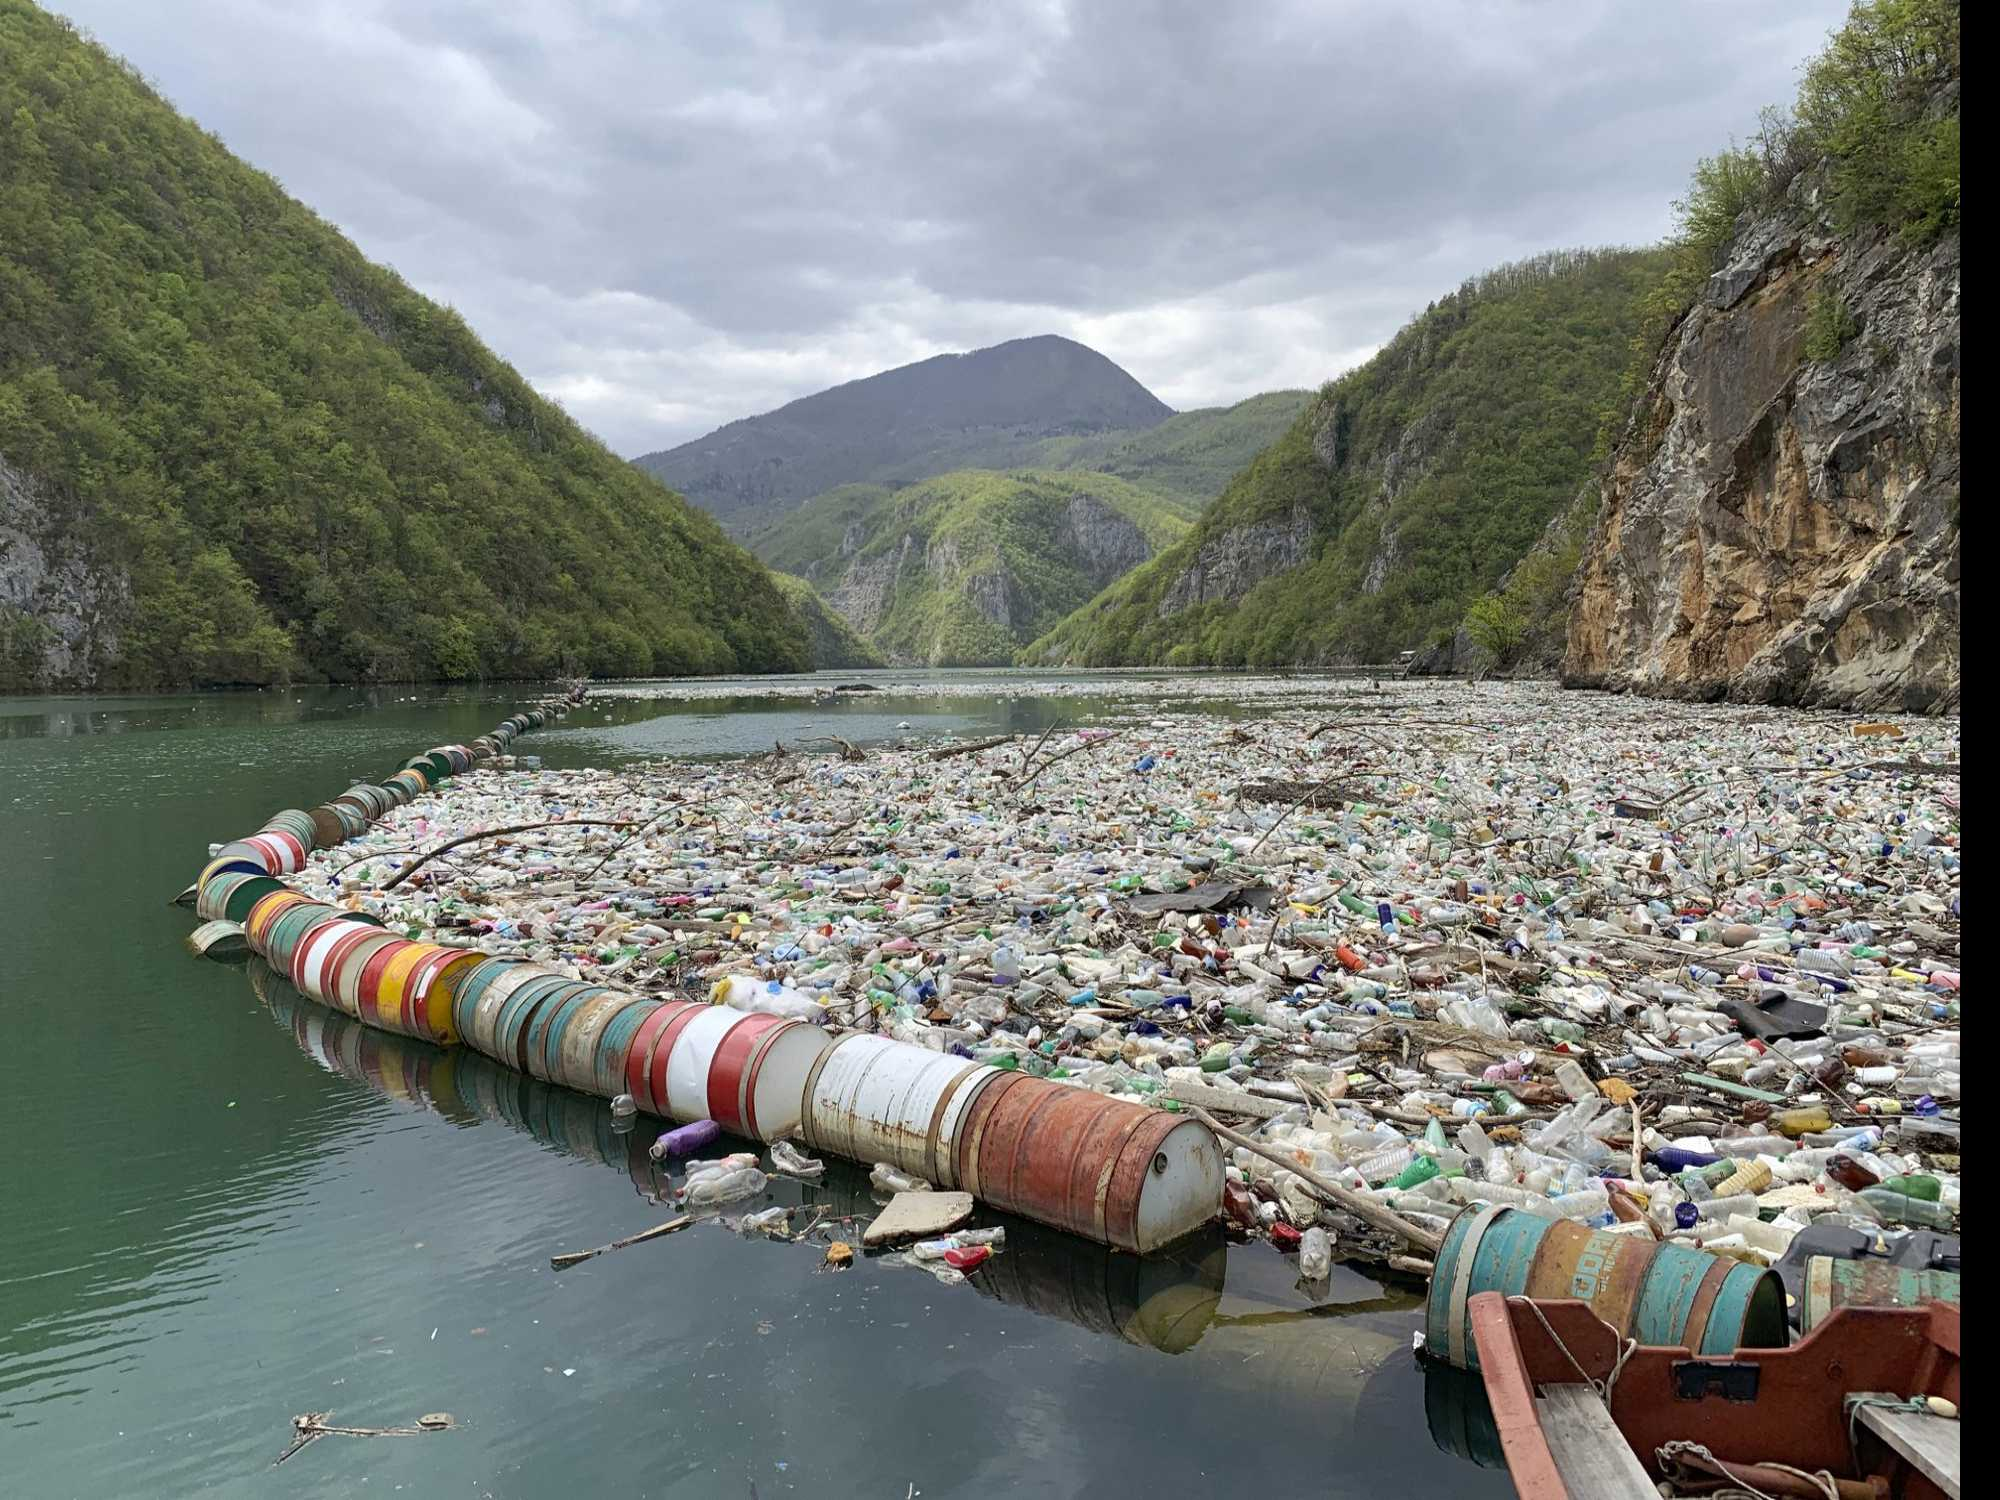 Garbage Clogs Once Crystal-Clear Bosnia Rivers Amid Neglect